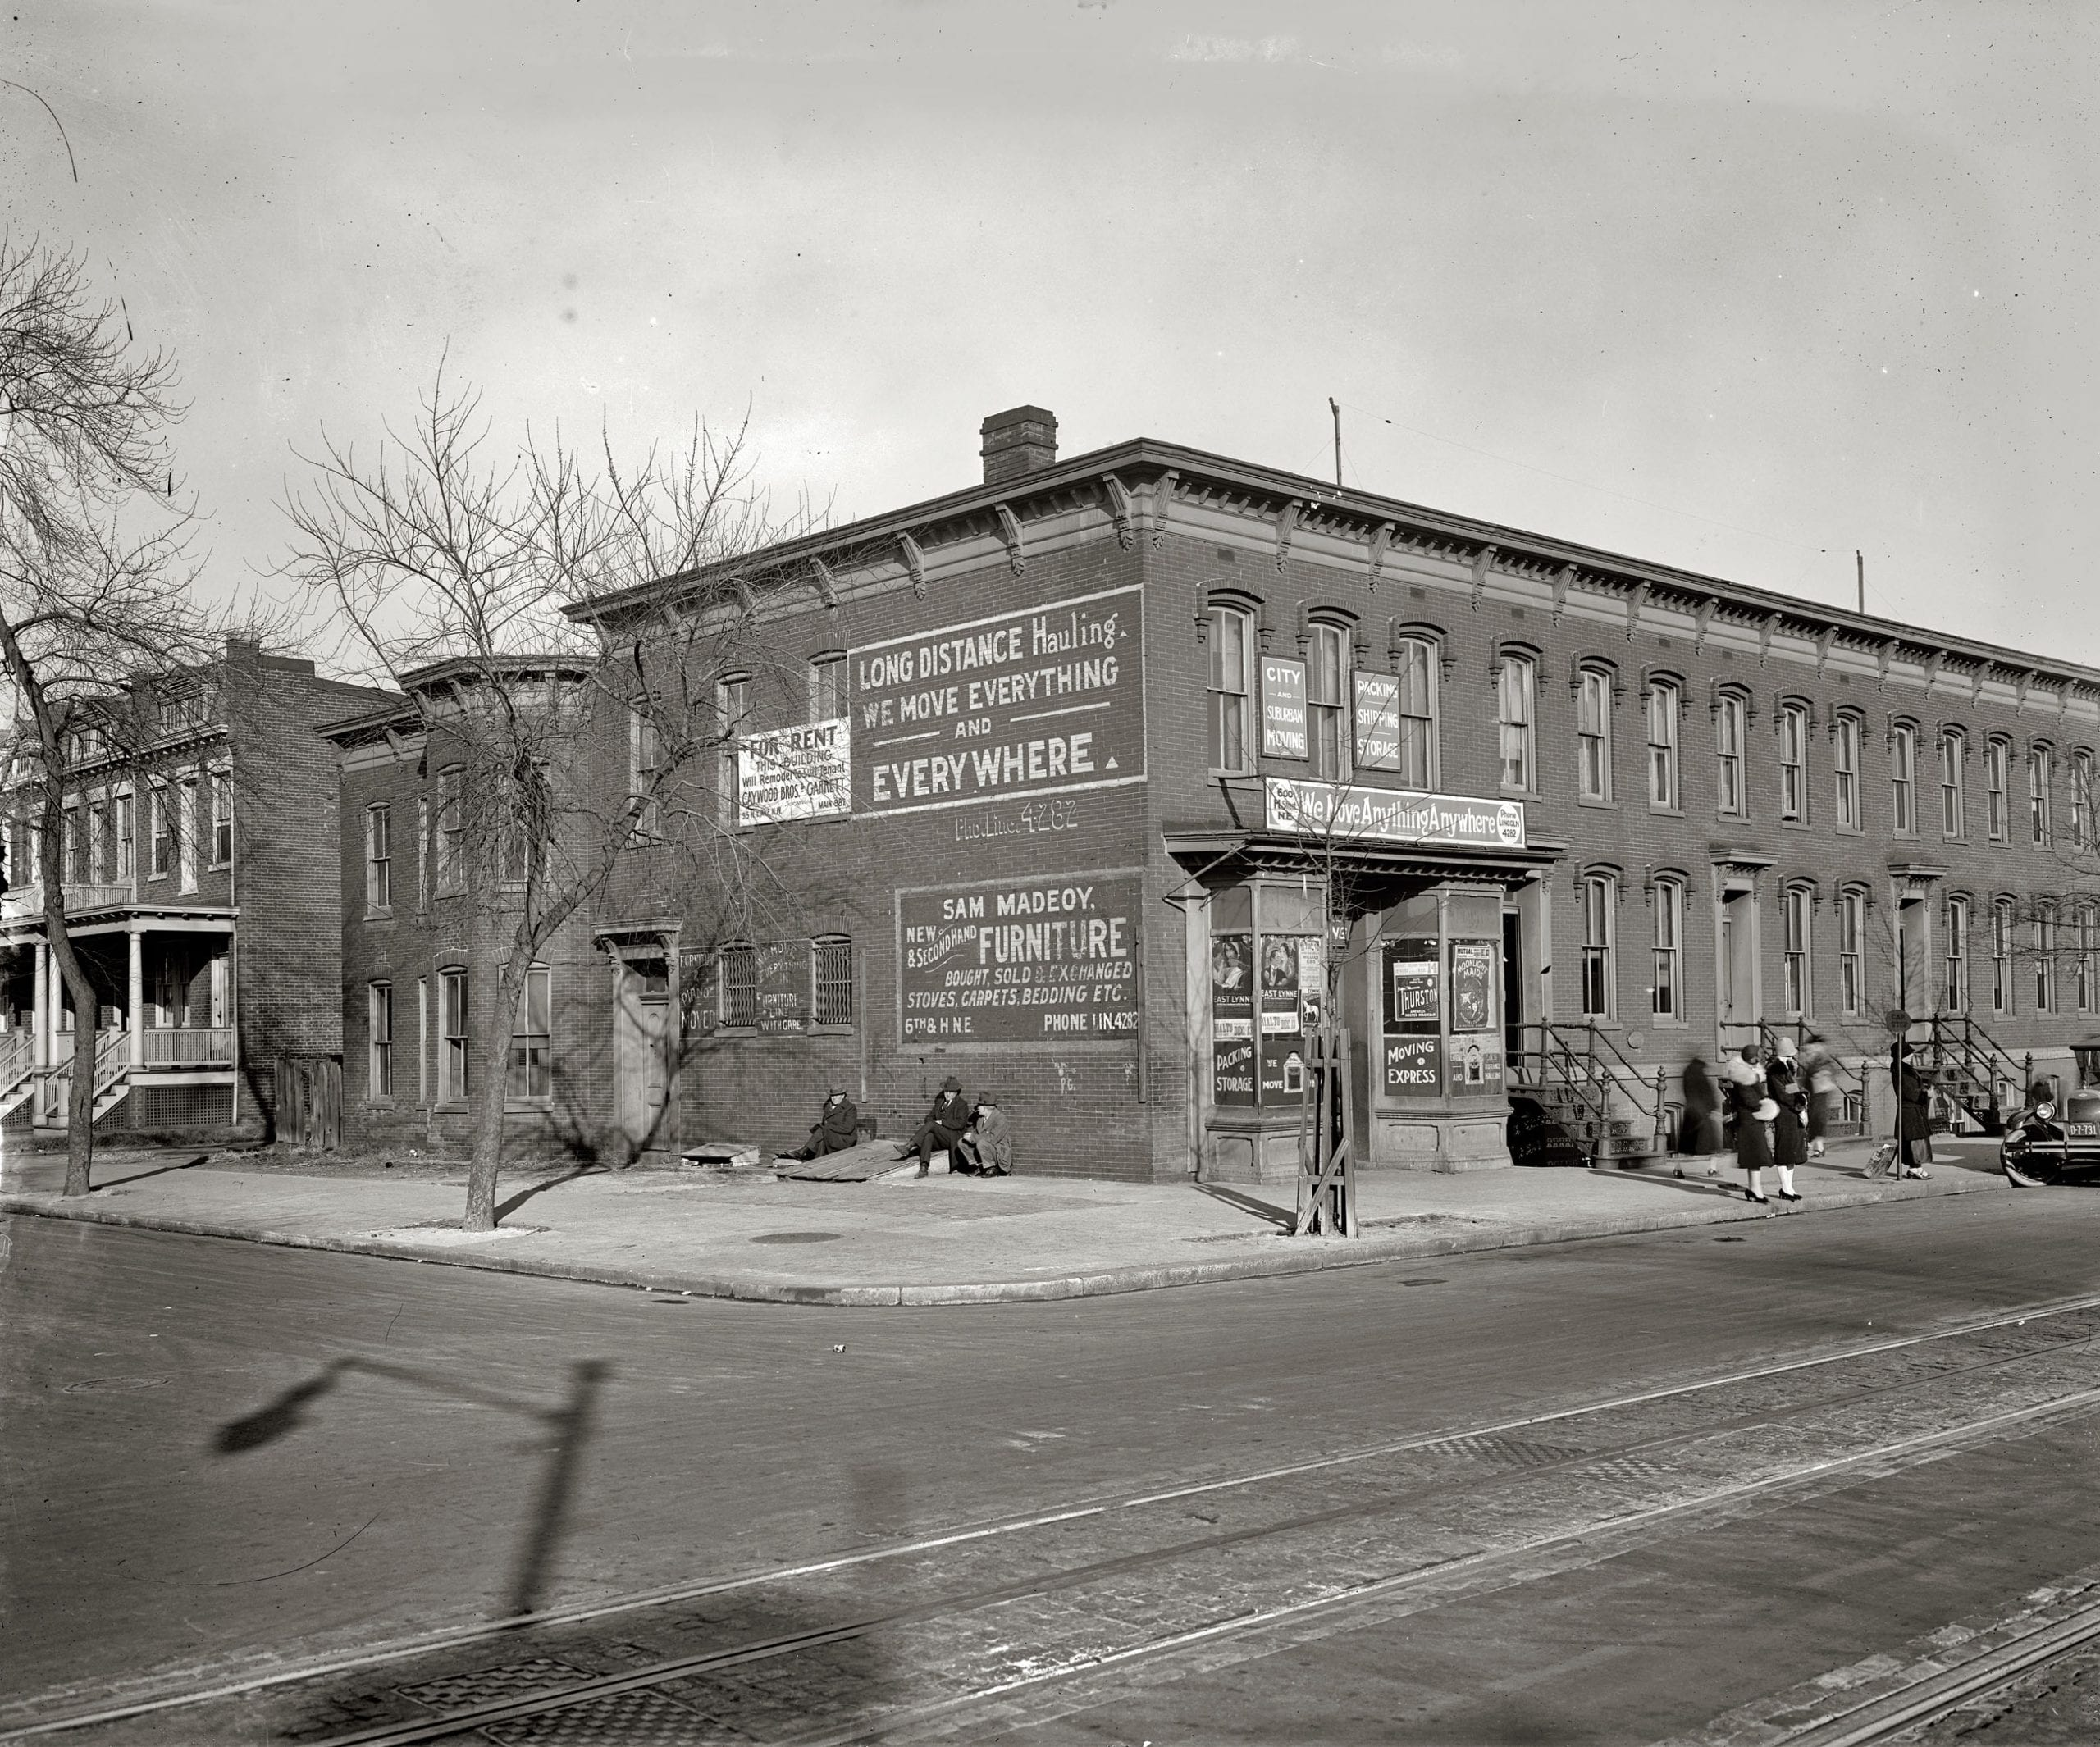 """Rowhouses and moving company."" Circa 1925, the furniture and hauling business of Sam Madeoy at 600 H Street N.E. National Photo Company."